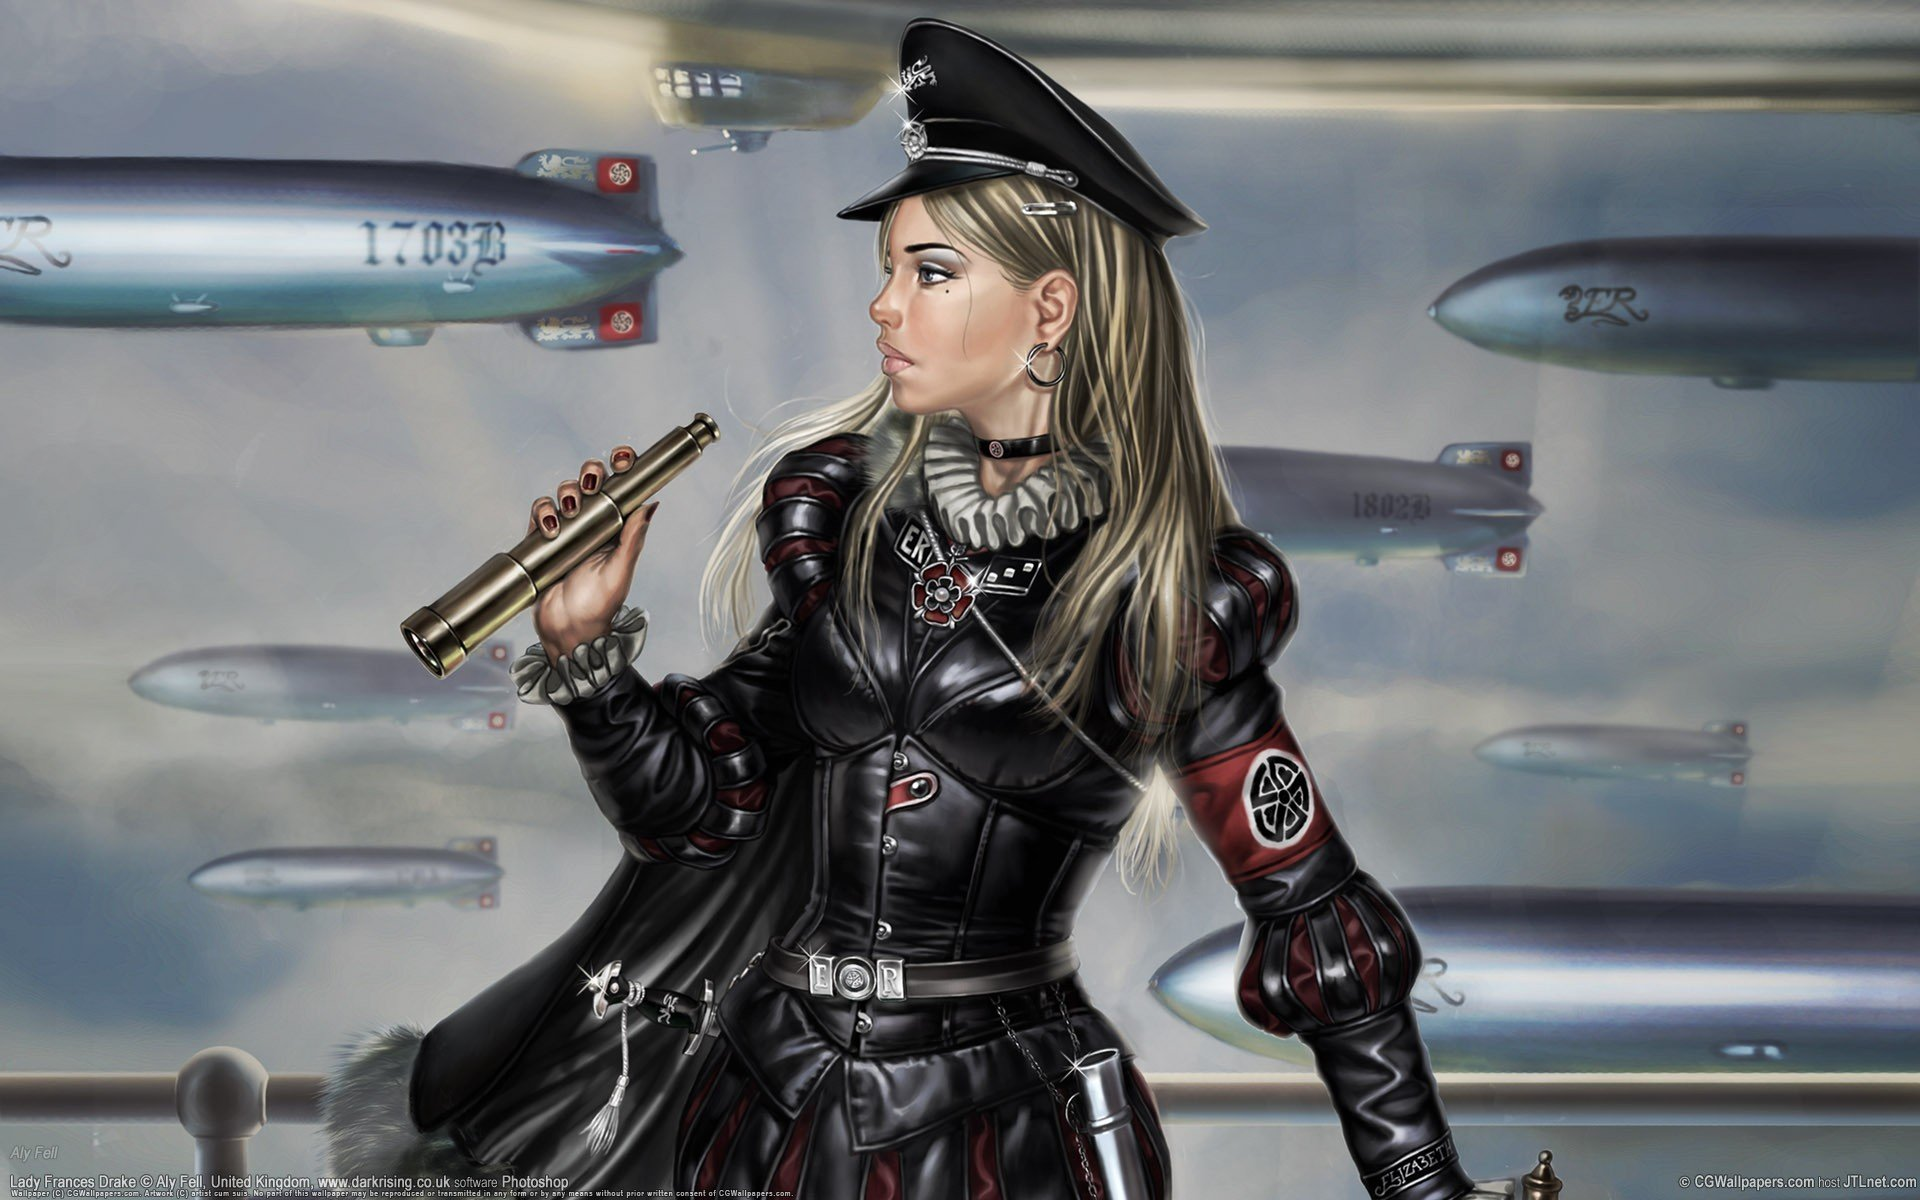 women uniforms weapons earrings vehicles zeppelin